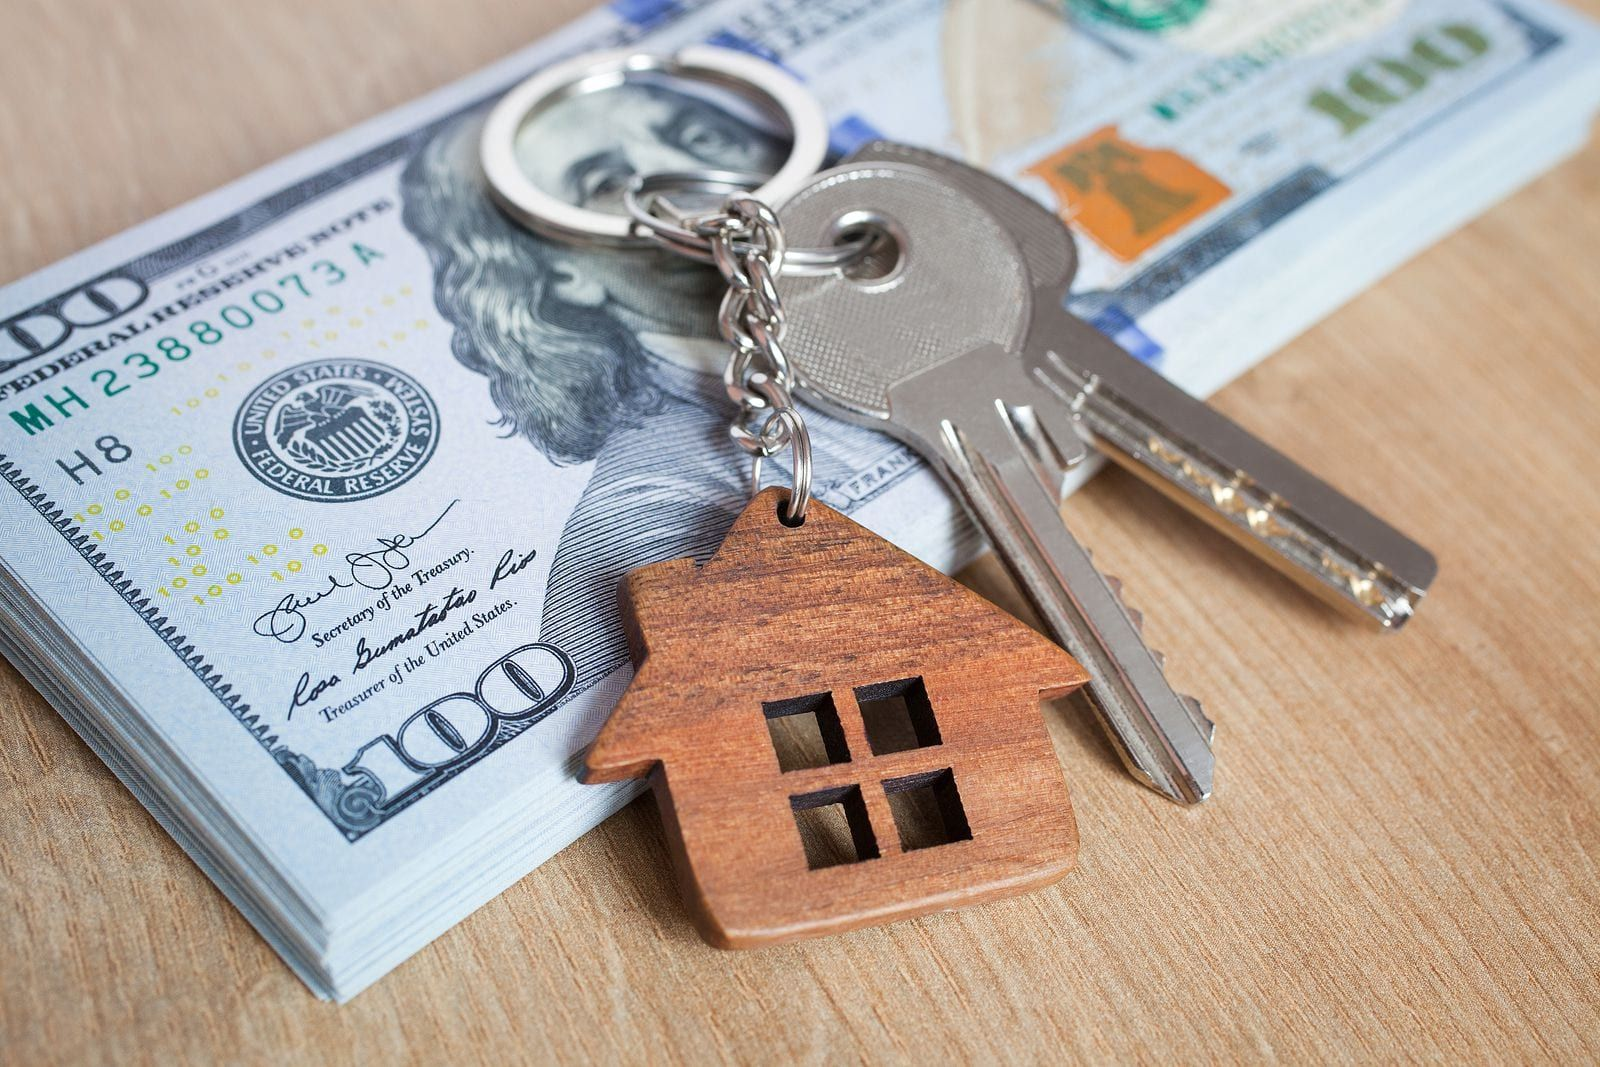 Effective gross in real estate what is it and how